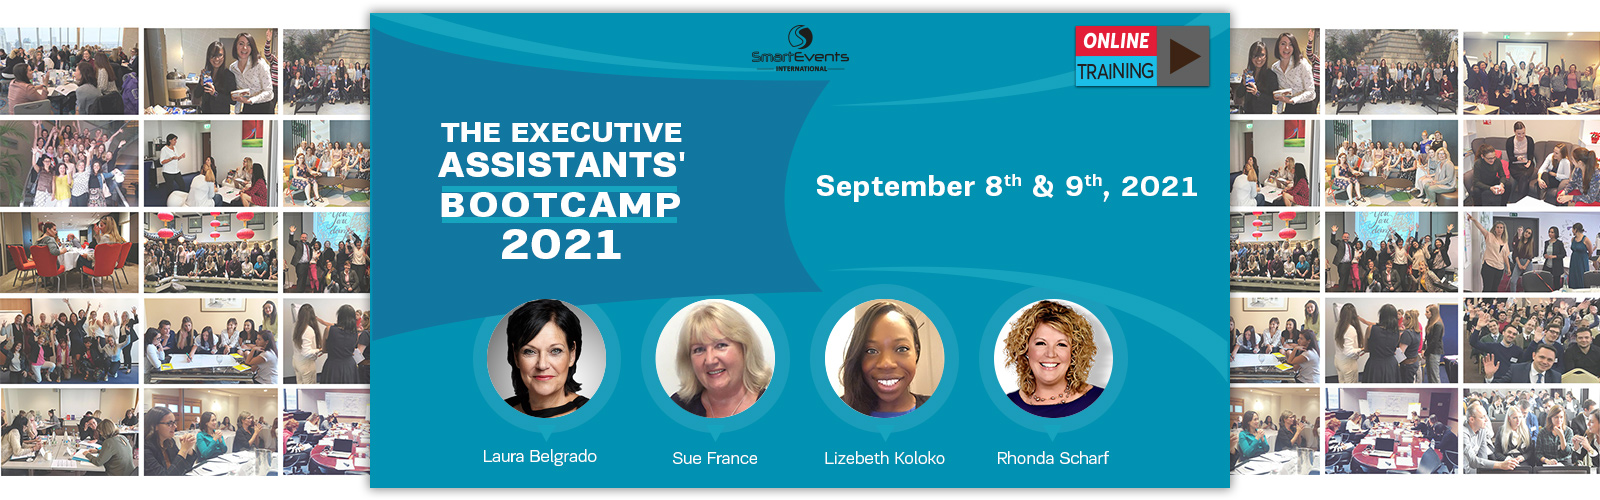 The Executive Assistants' Bootcamp 2021